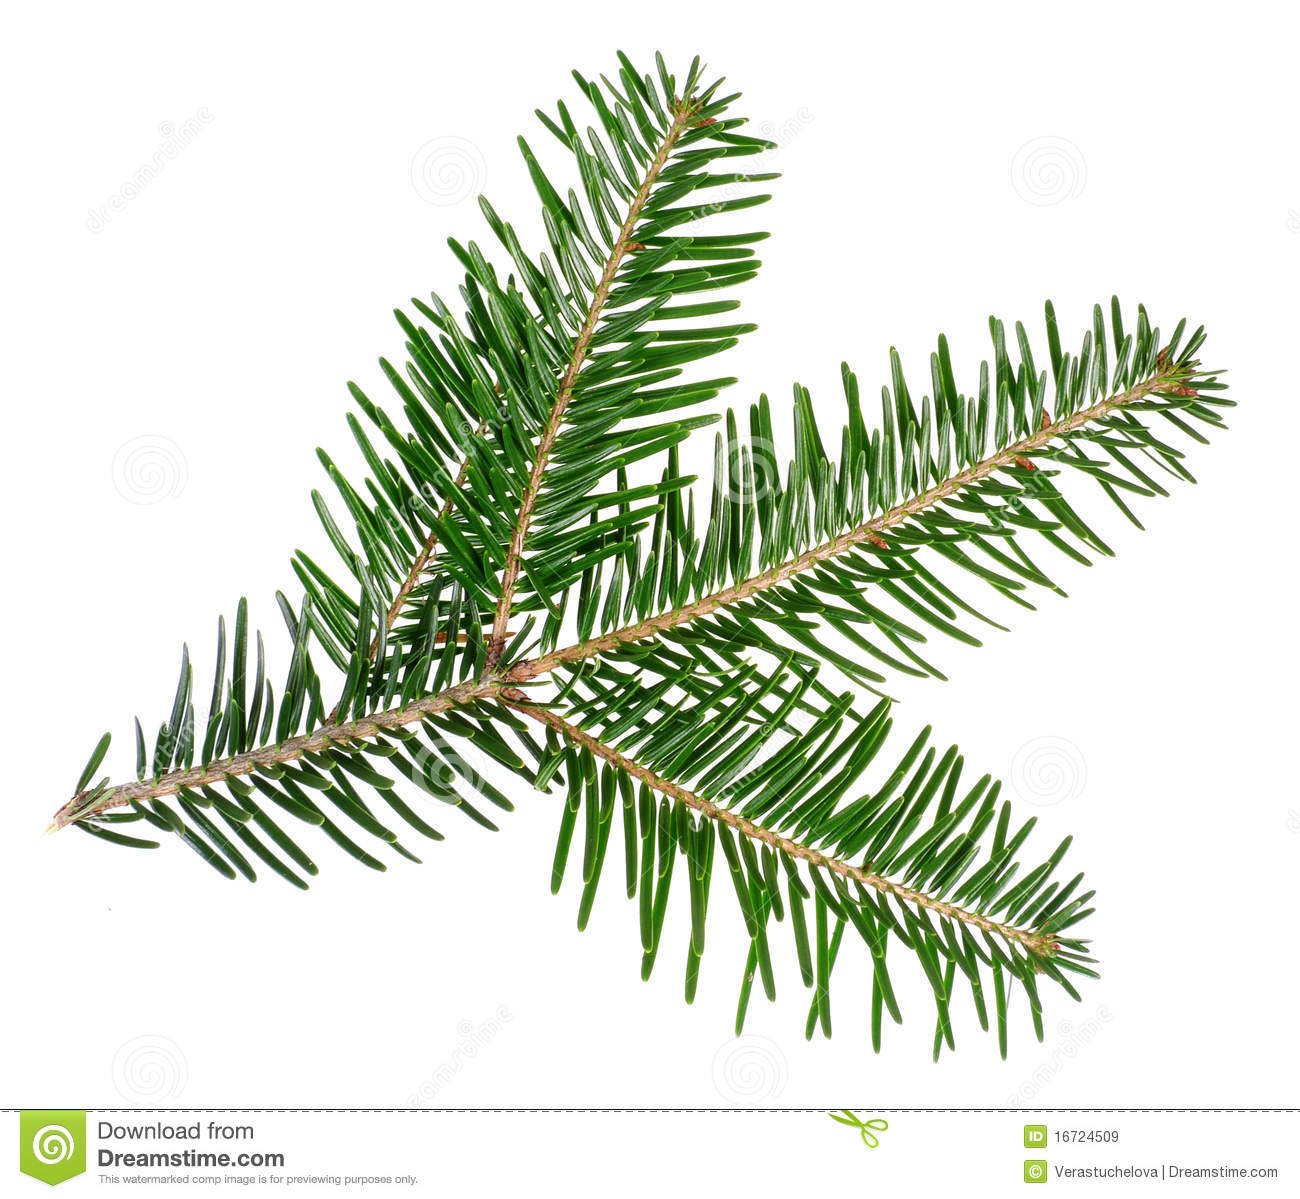 Green Spruce Twig Royalty Free Stock Images - Image: 16724509